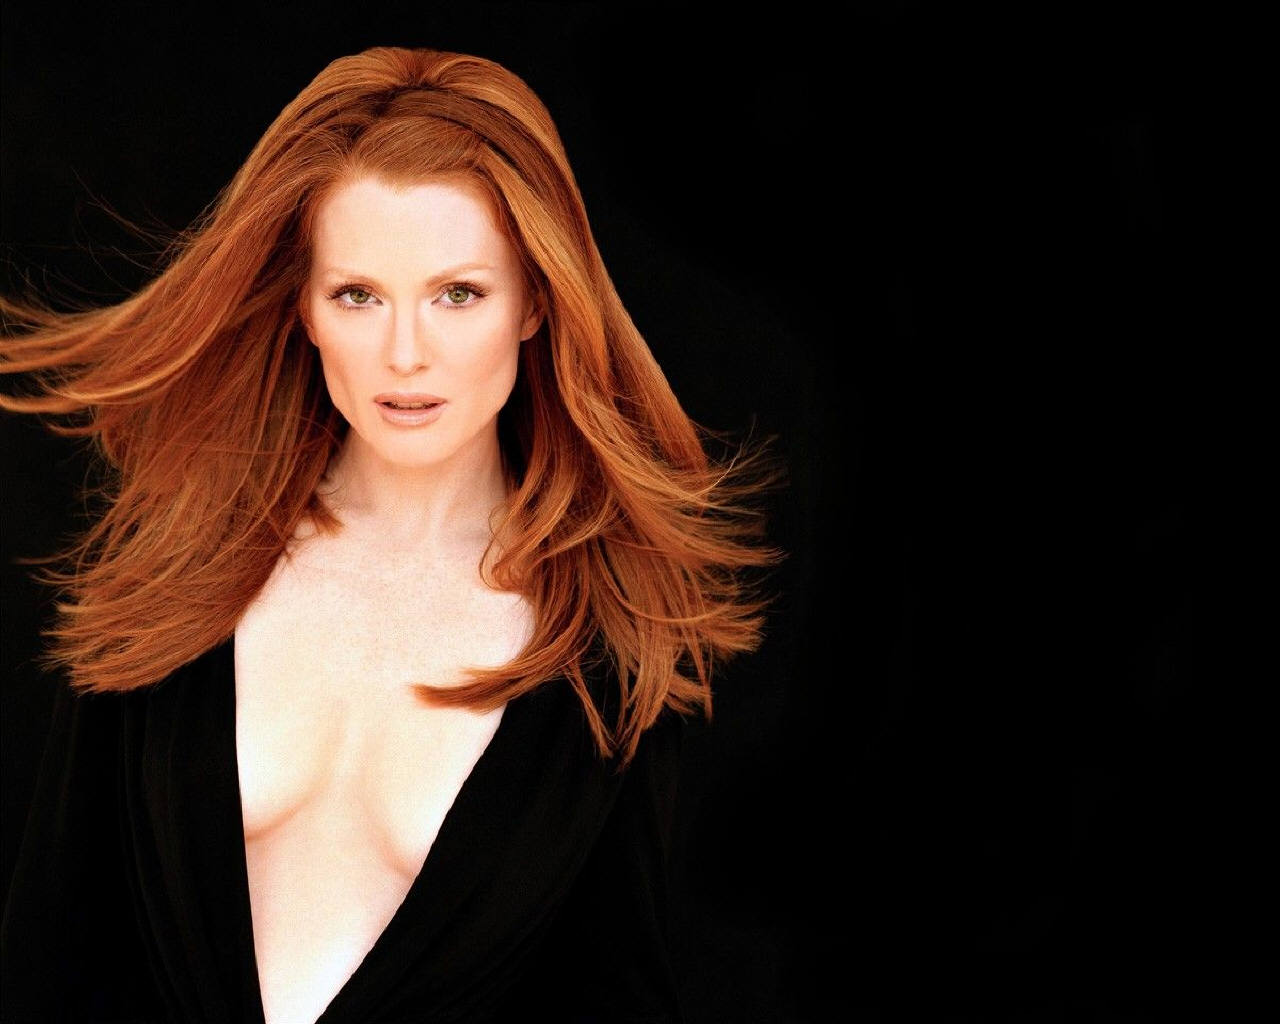 Julianne Moore  Julianne Moore Wallpaper (253307)  Fanpop - 1960S Hairstyles